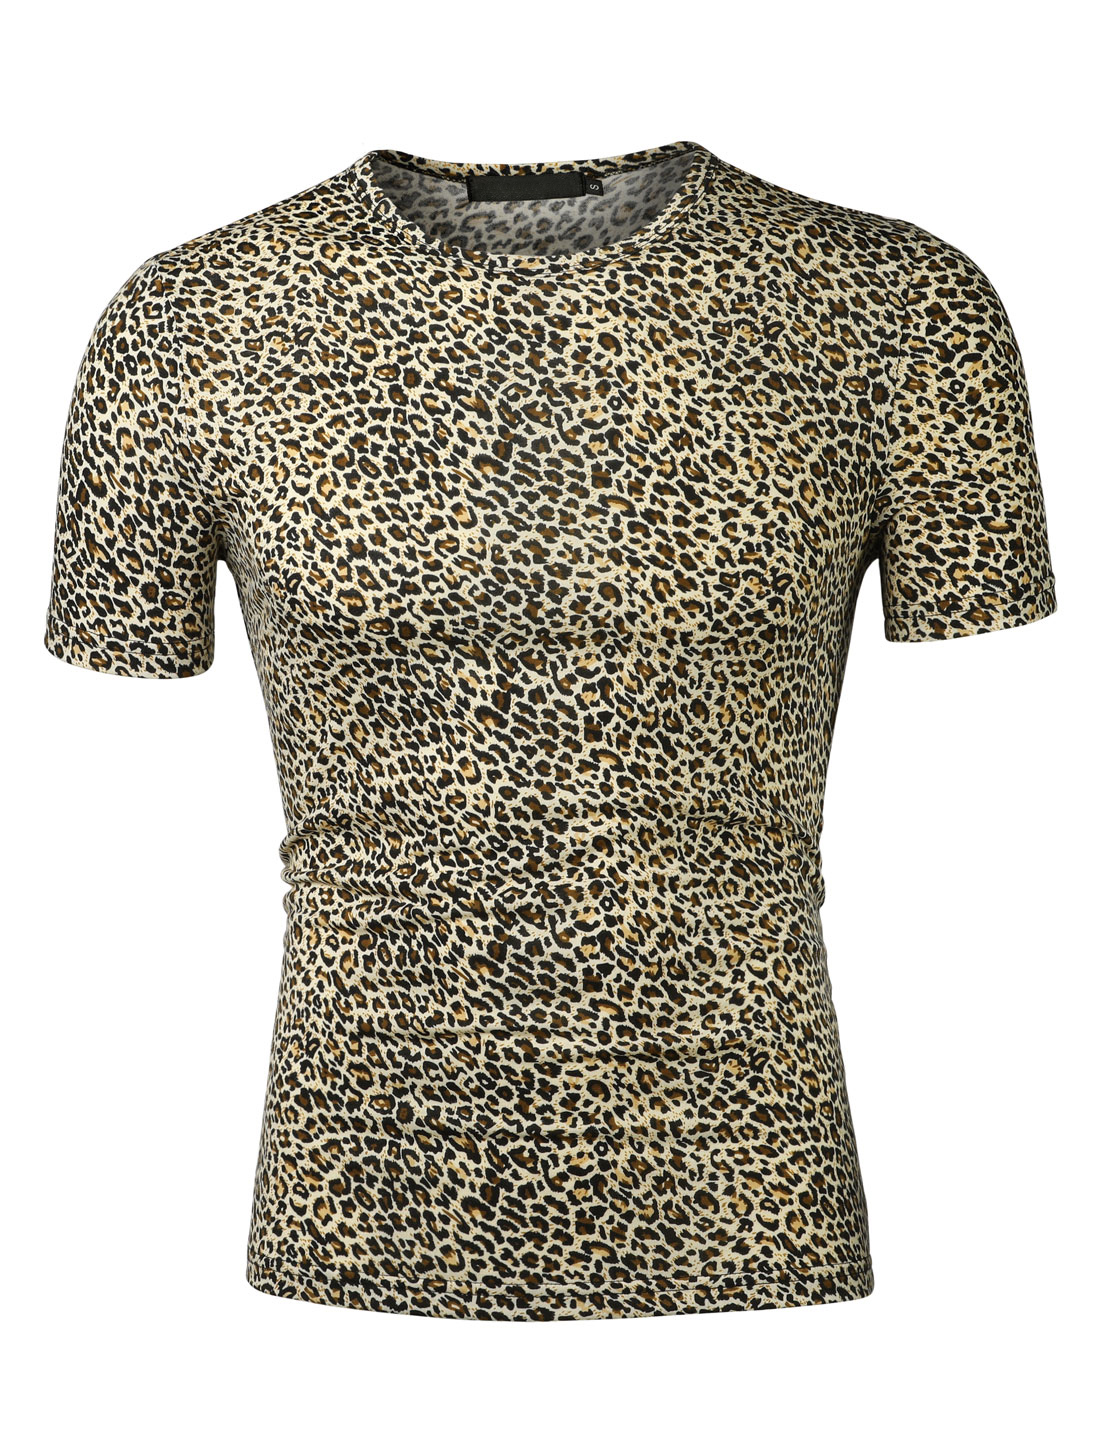 Mens Beige Black Leopard Prints Round Neck Stretchy Fit Tee Shirt Top L